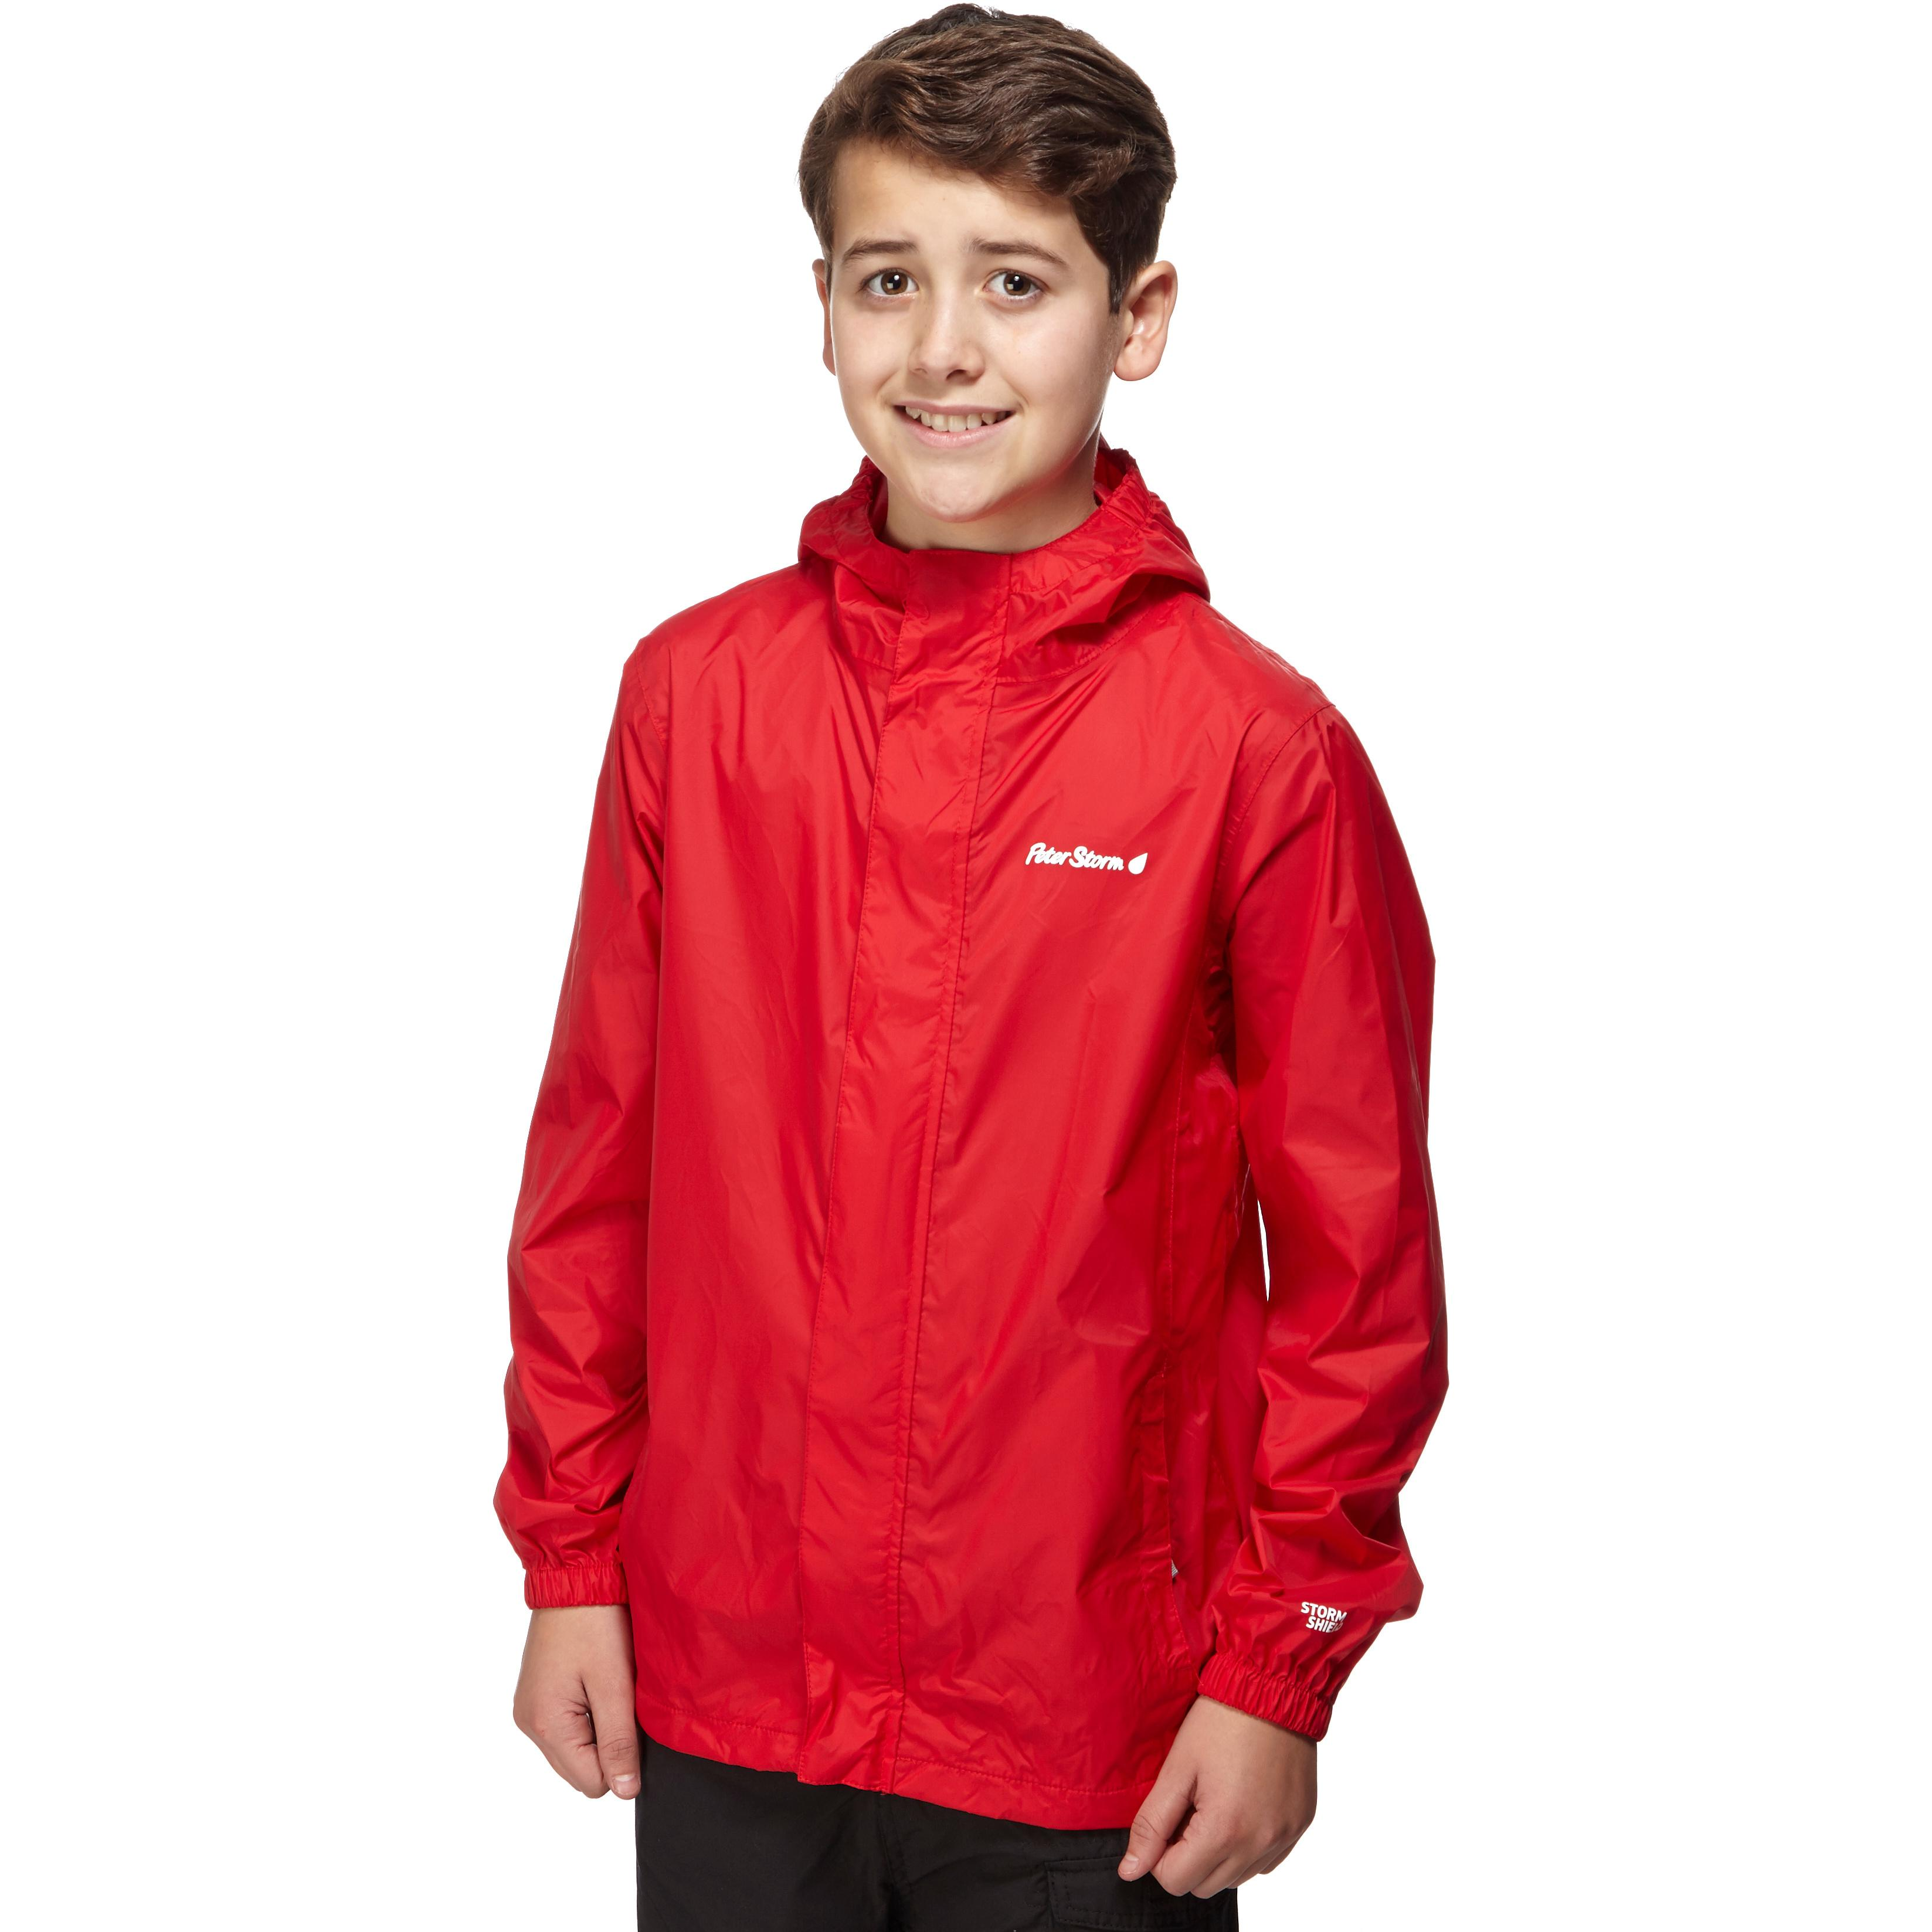 New Peter Storm Kids Camping Unisex Packable Trousers